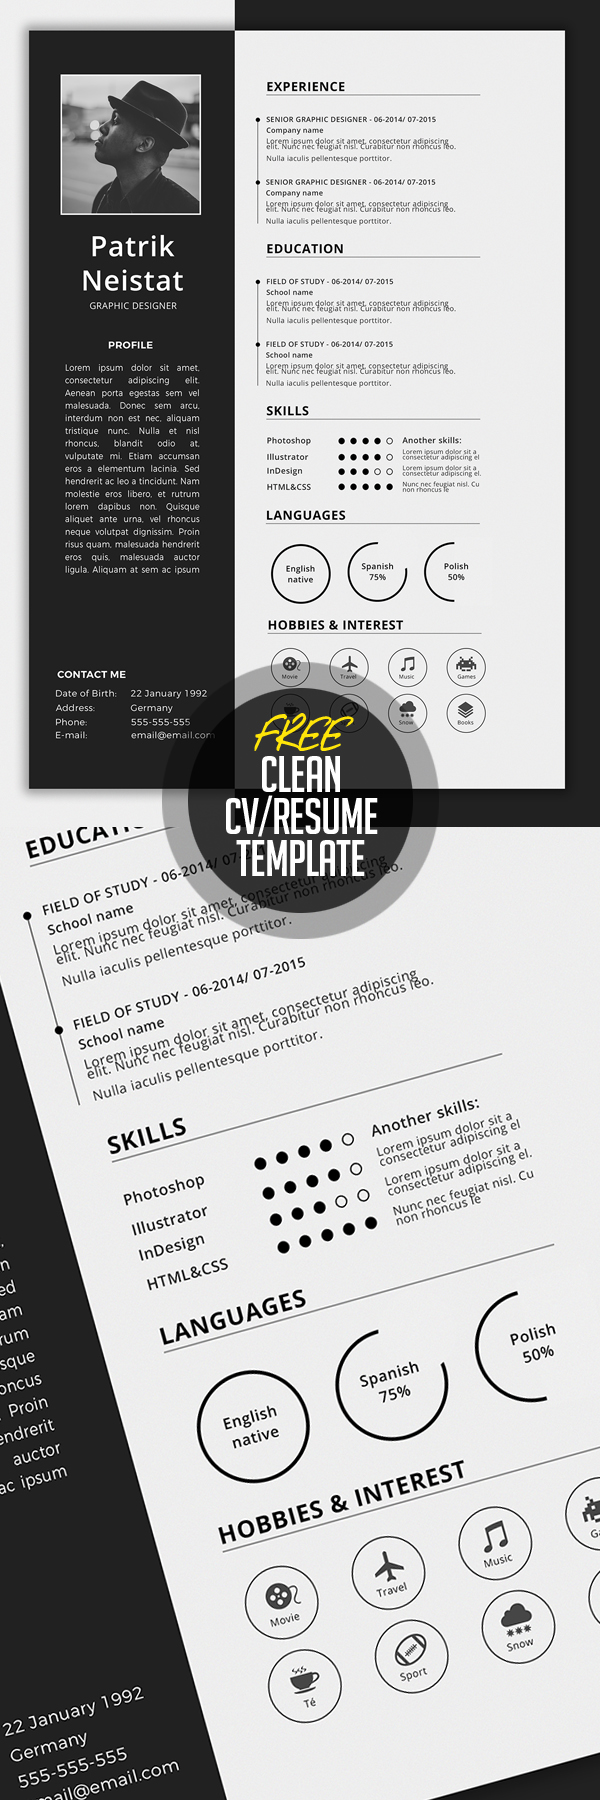 simple cvresume template free download